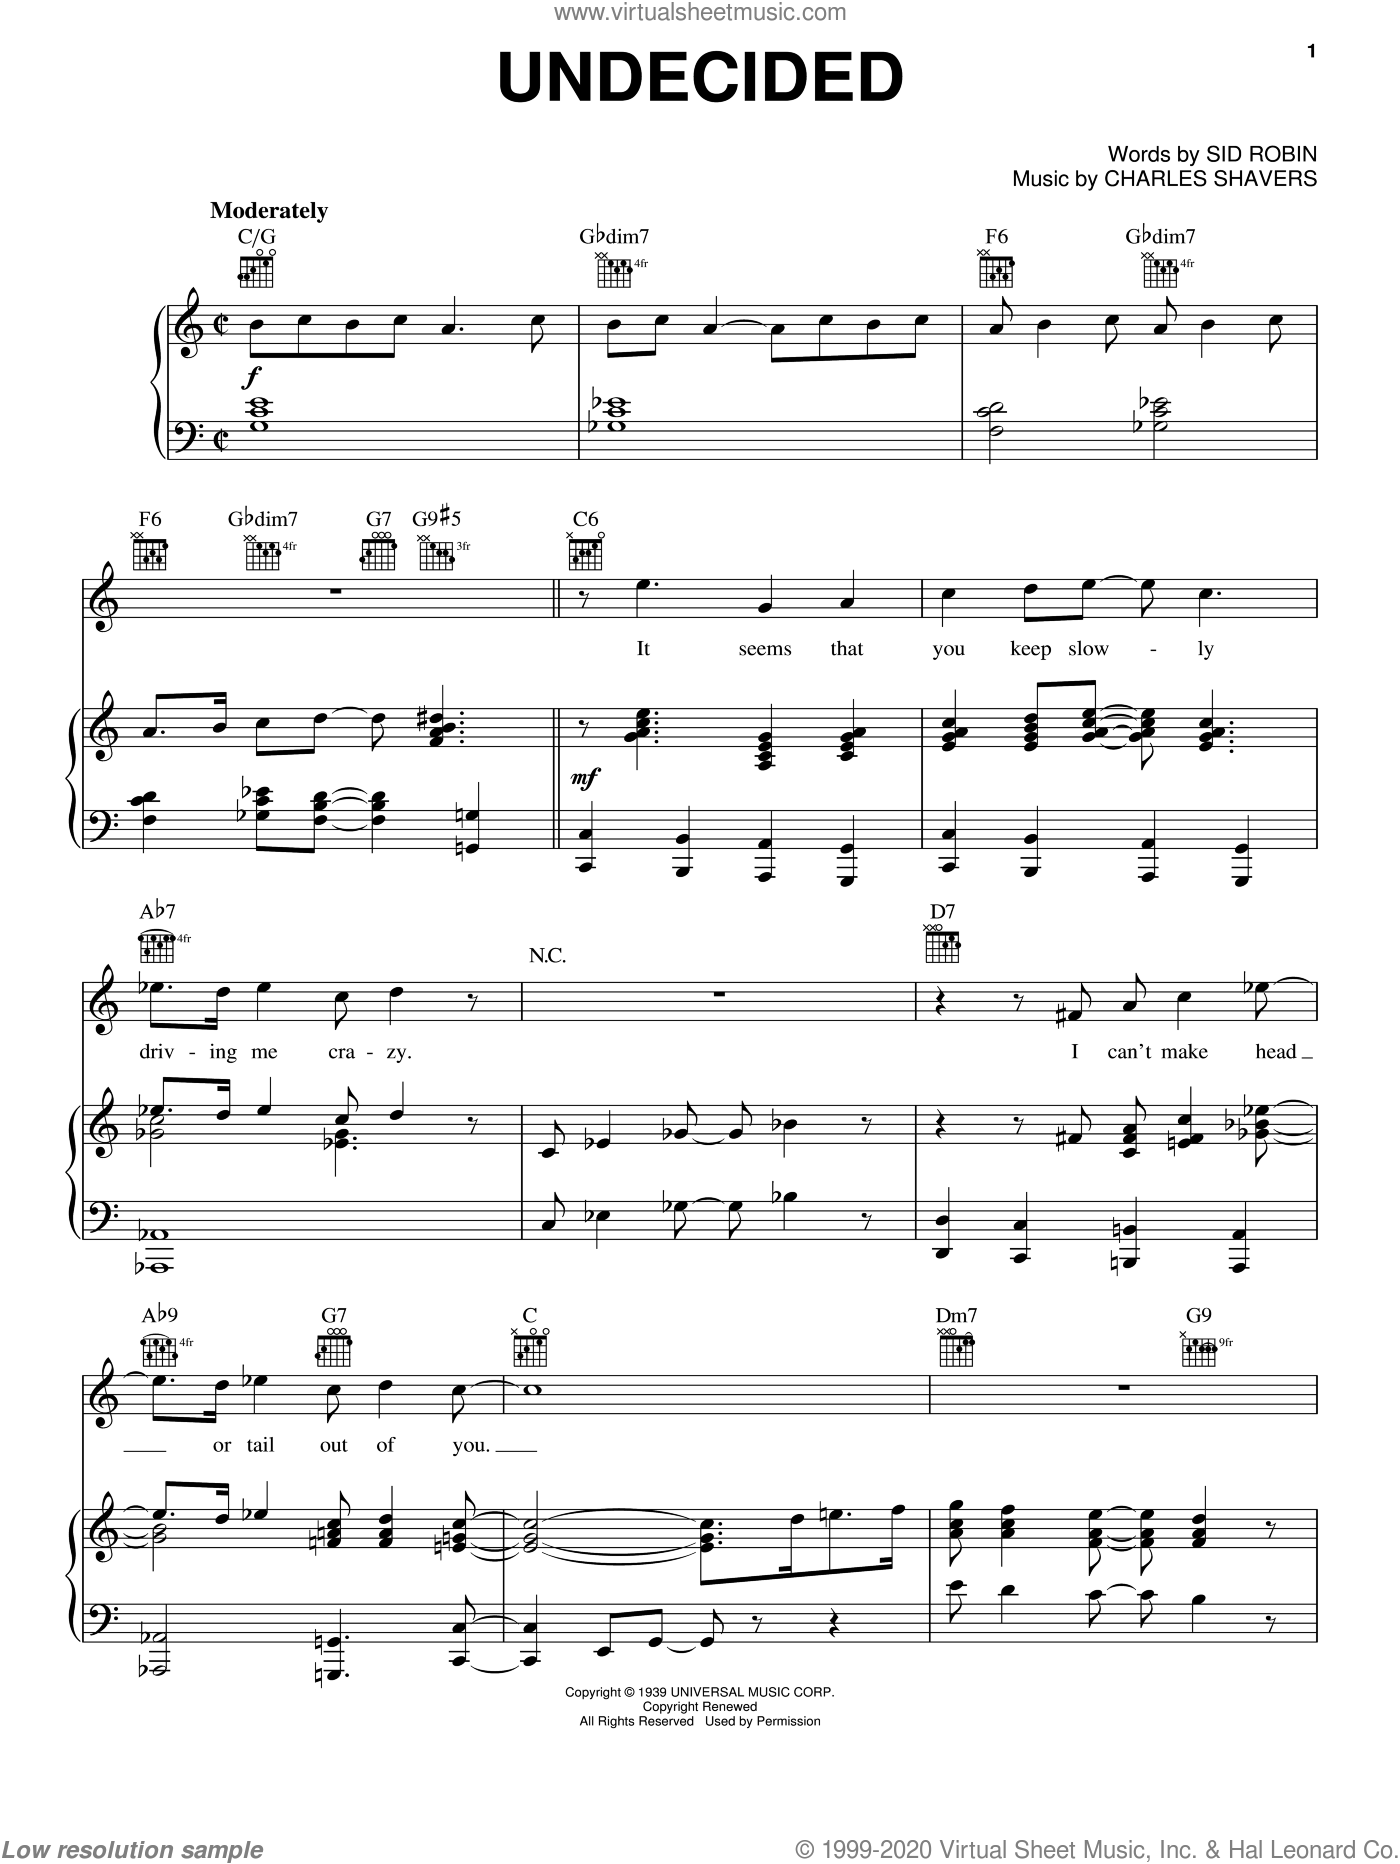 Undecided sheet music for voice, piano or guitar by Ella Fitzgerald, Chick Webb, Erroll Garner, Louis Armstrong, Charles Shavers and Sid Robin, intermediate skill level